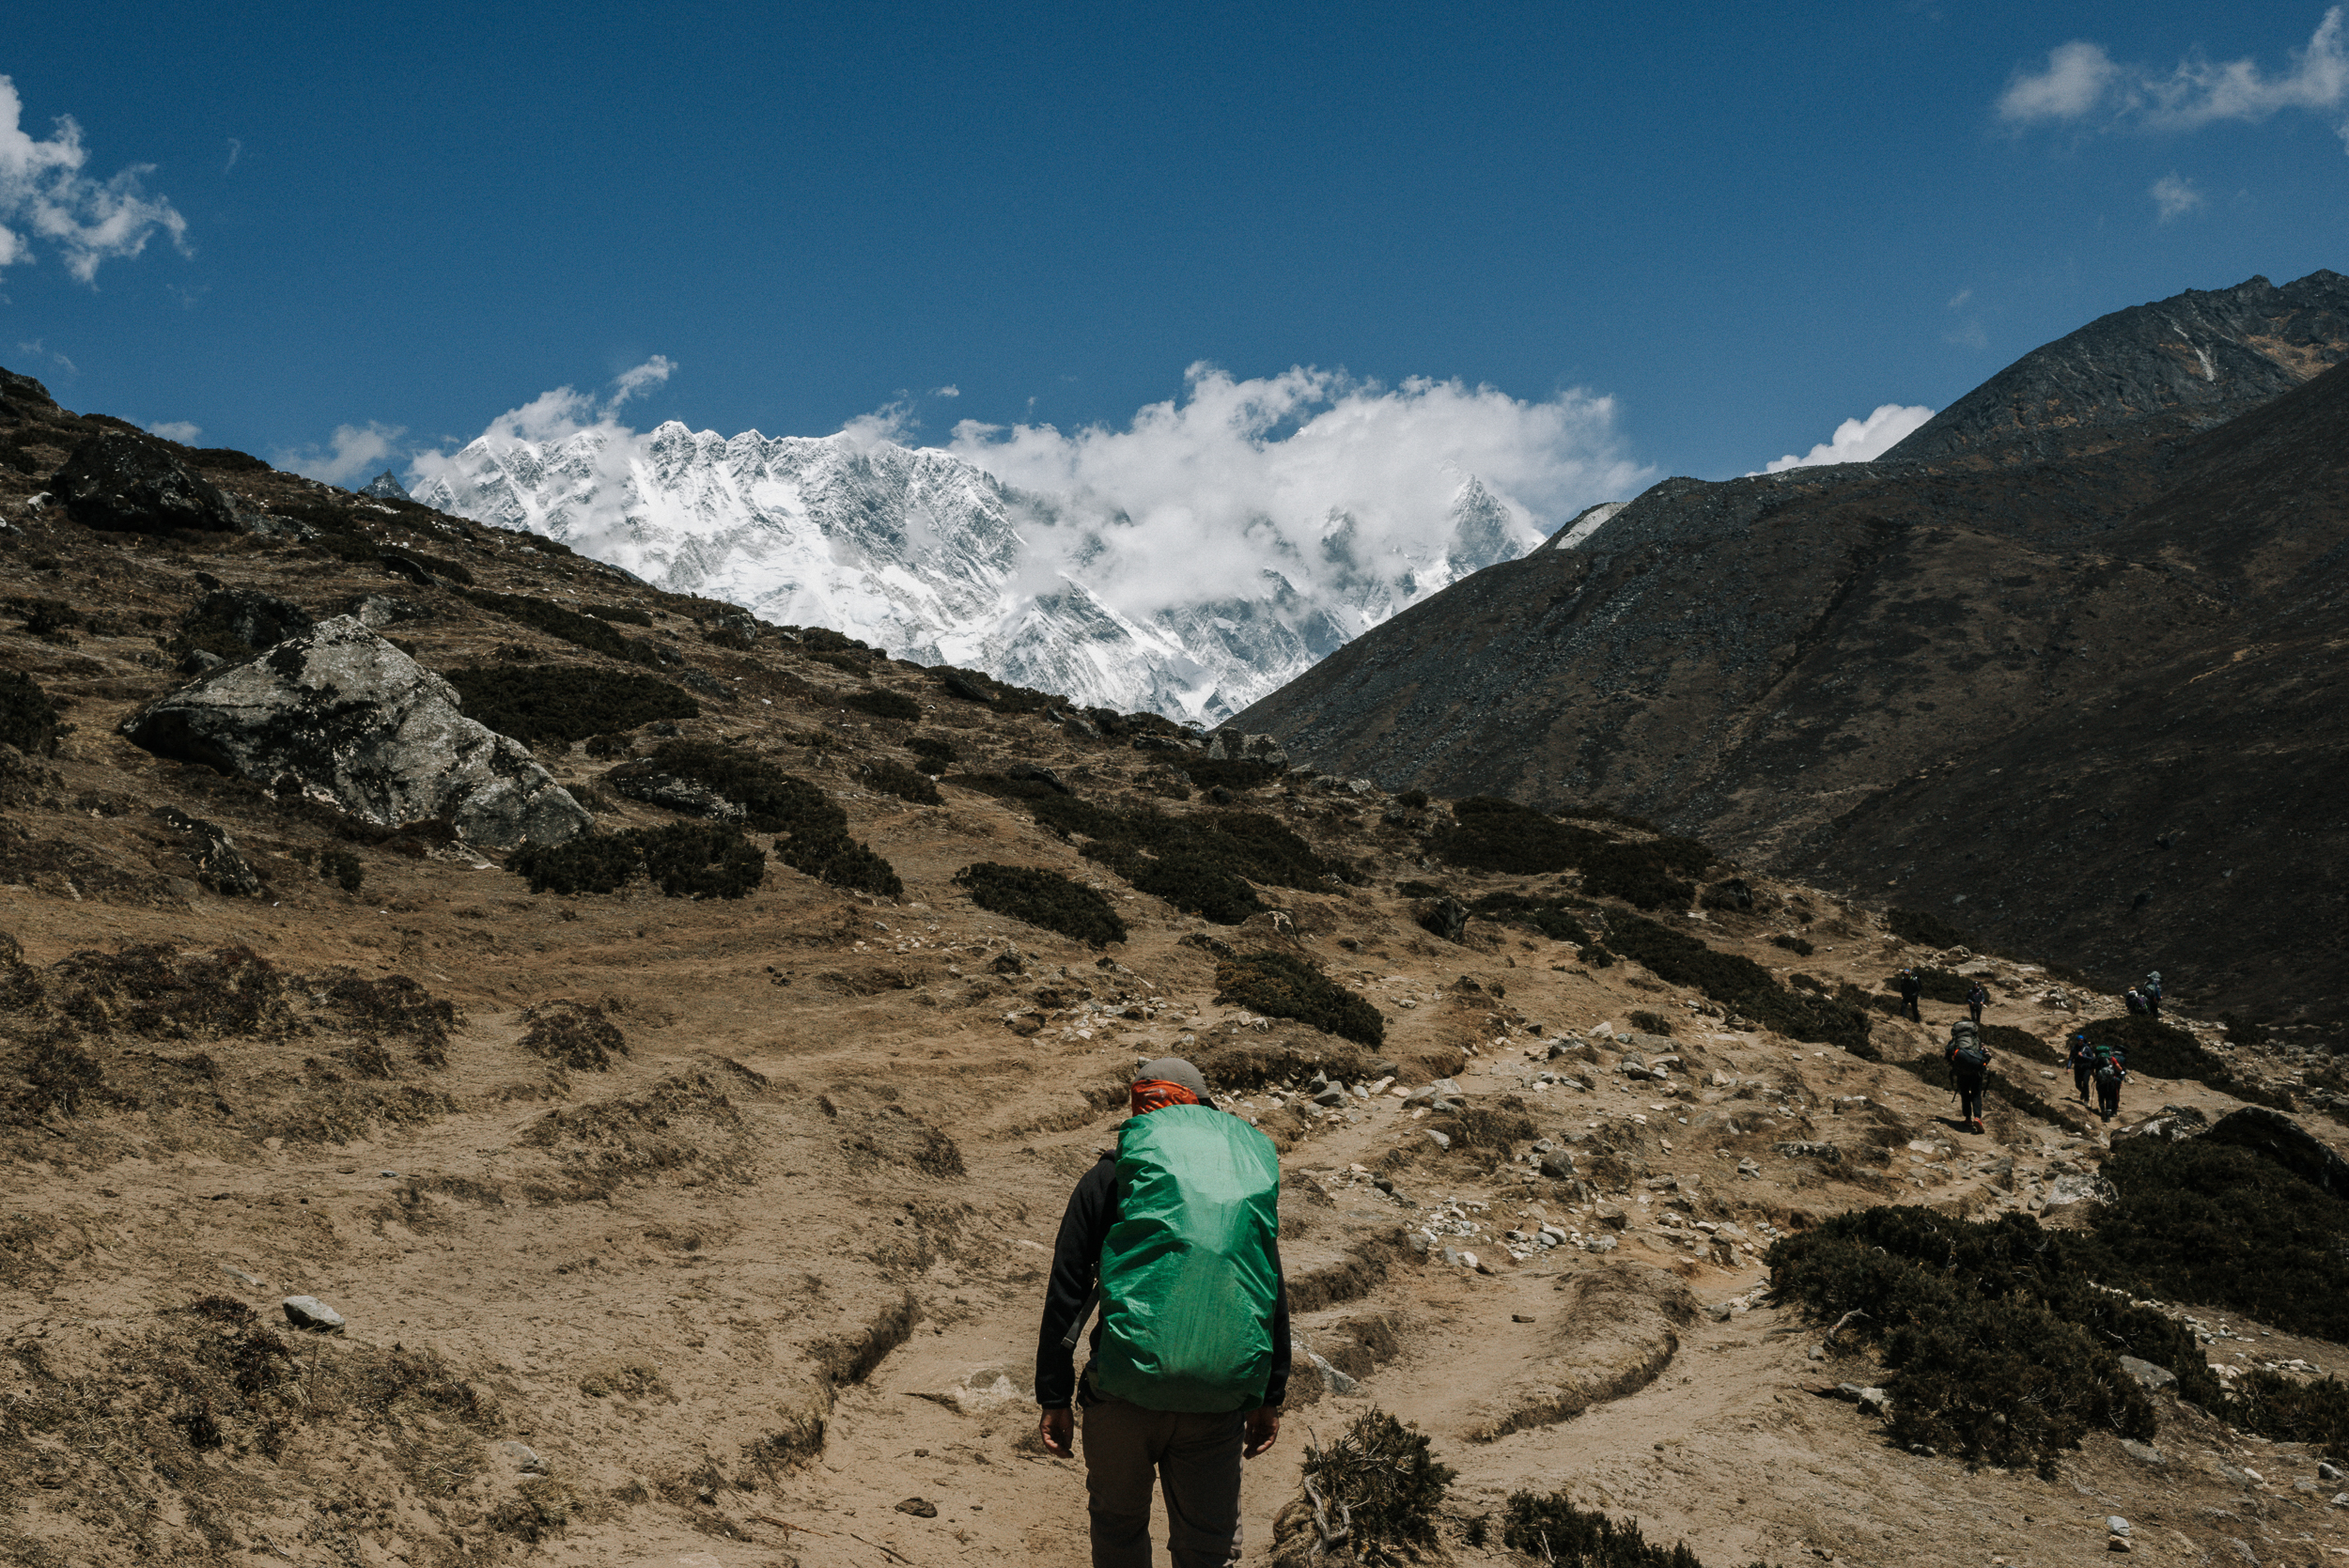 Nepal_EverestBaseCamp_2019_TaraShupe_Photography_DSC_3900.jpg